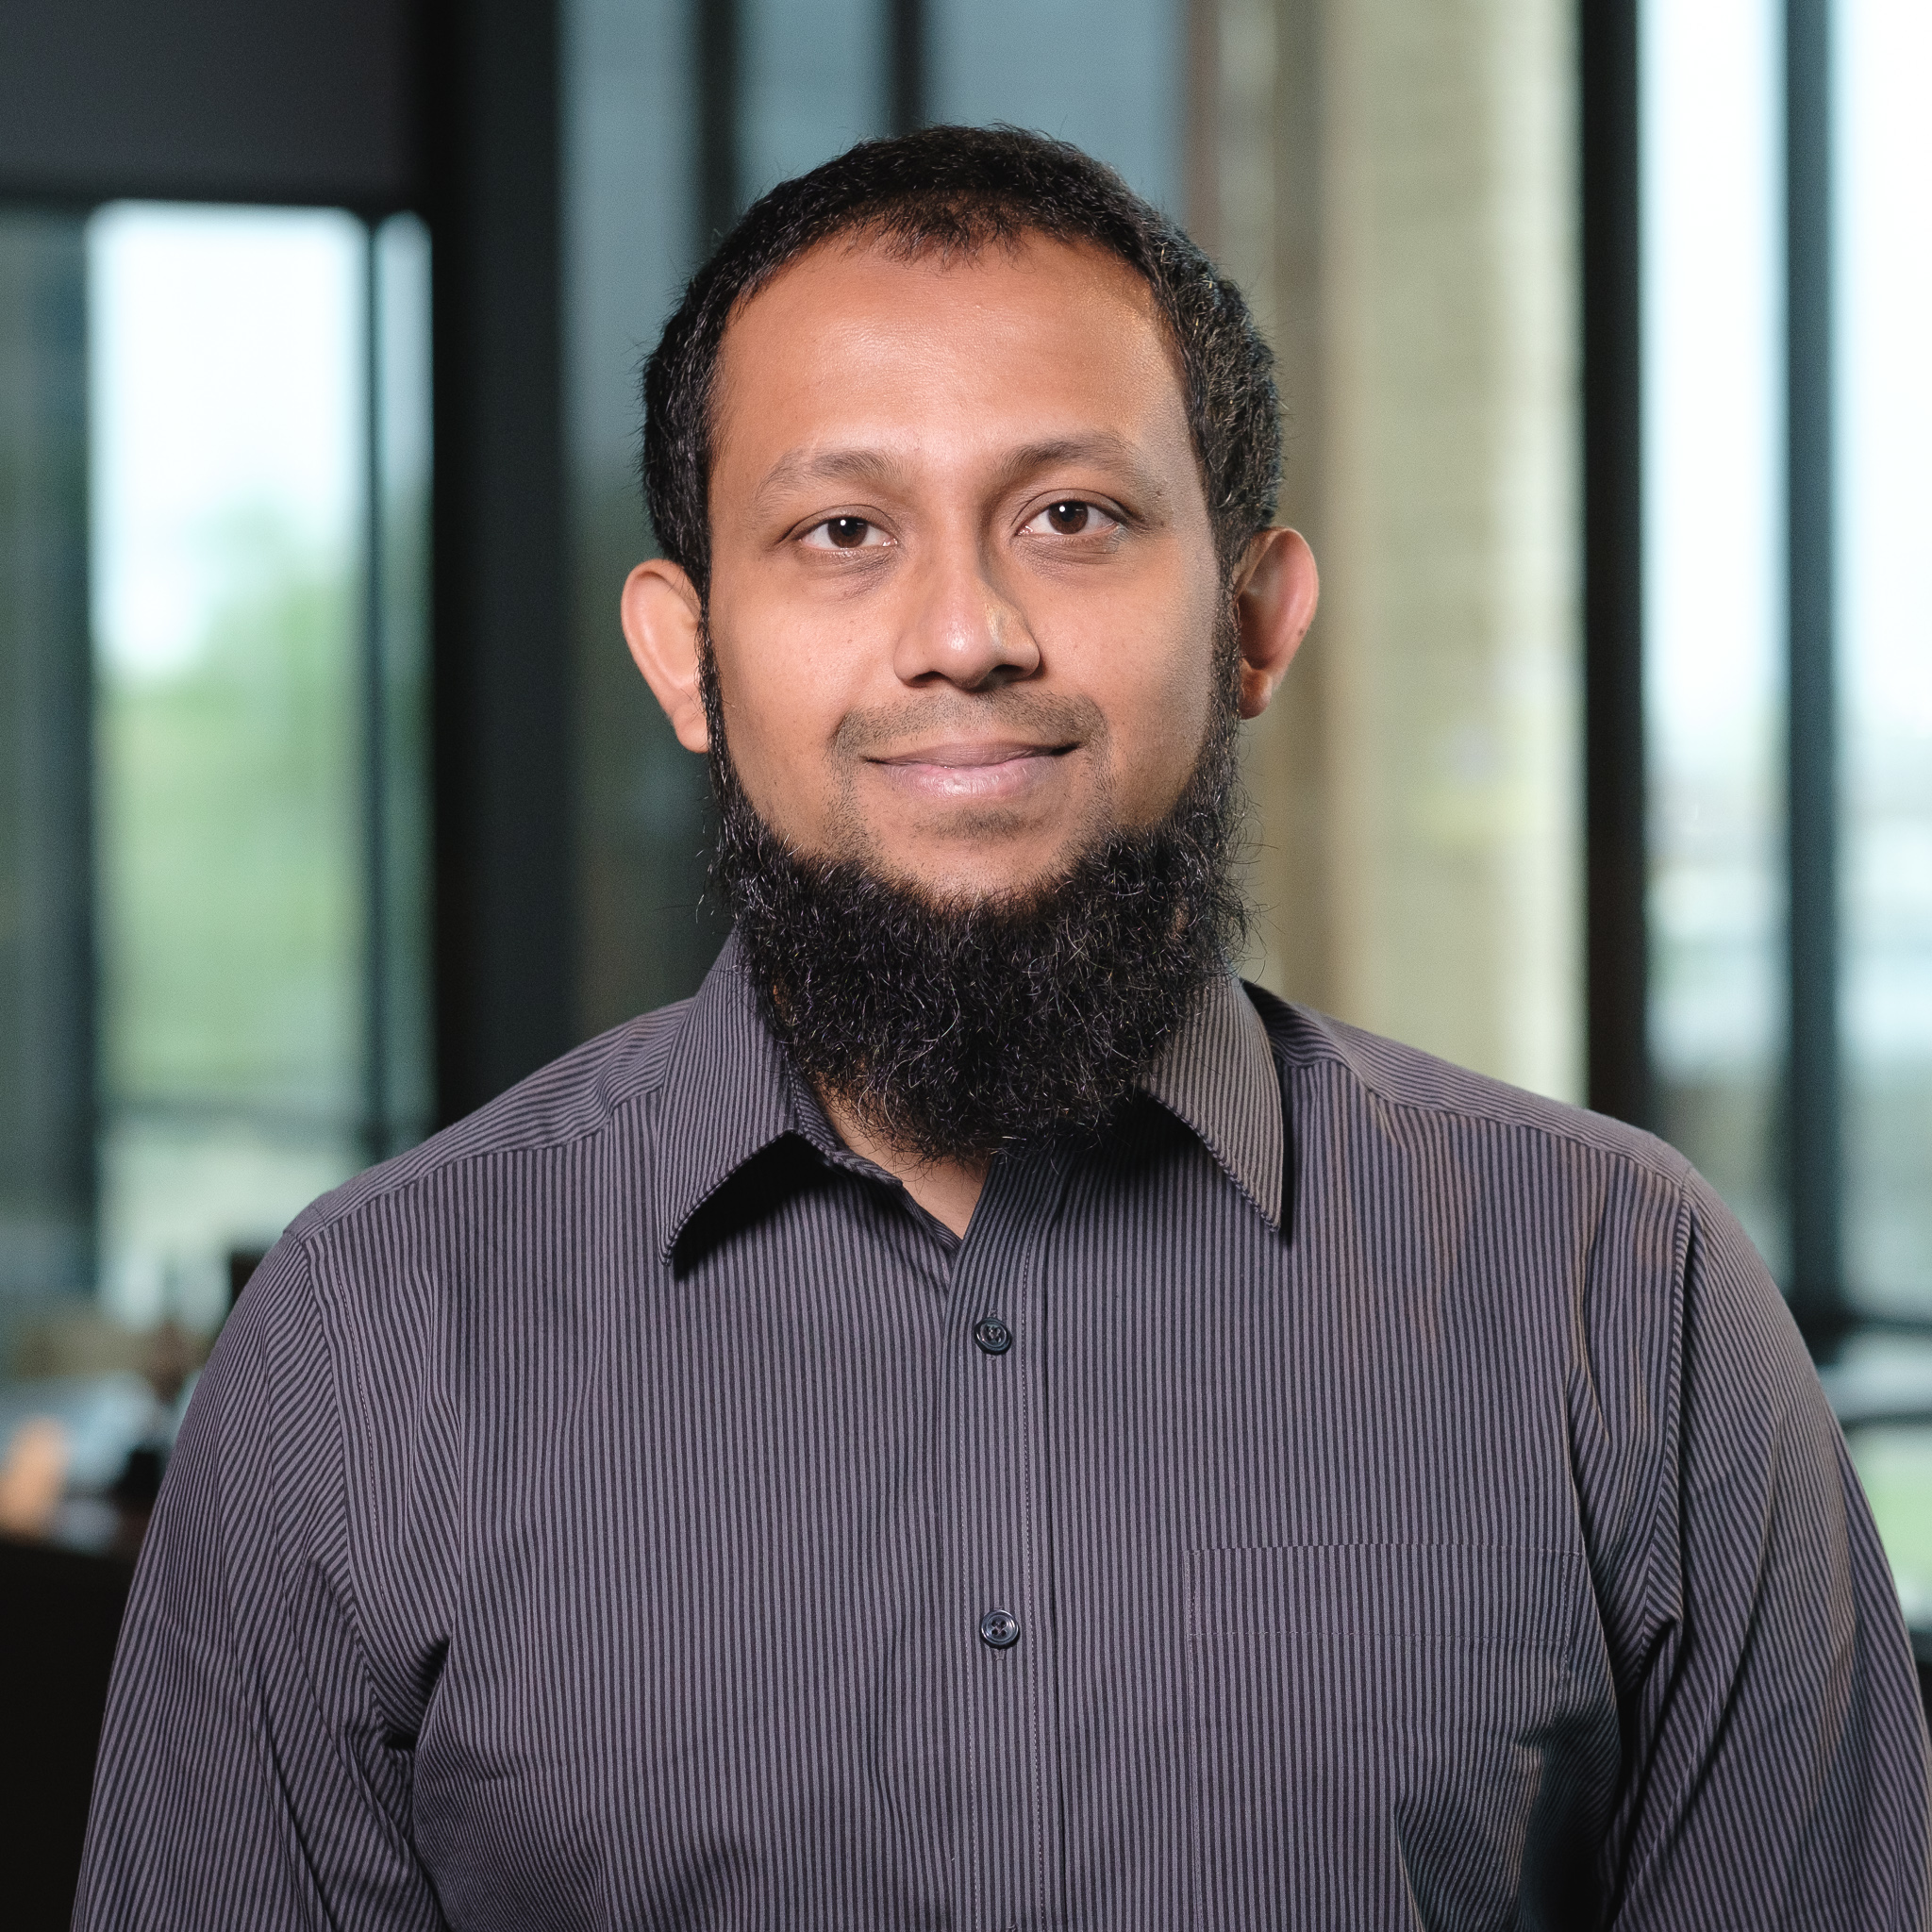 Fahim Muhmad - Project Manager